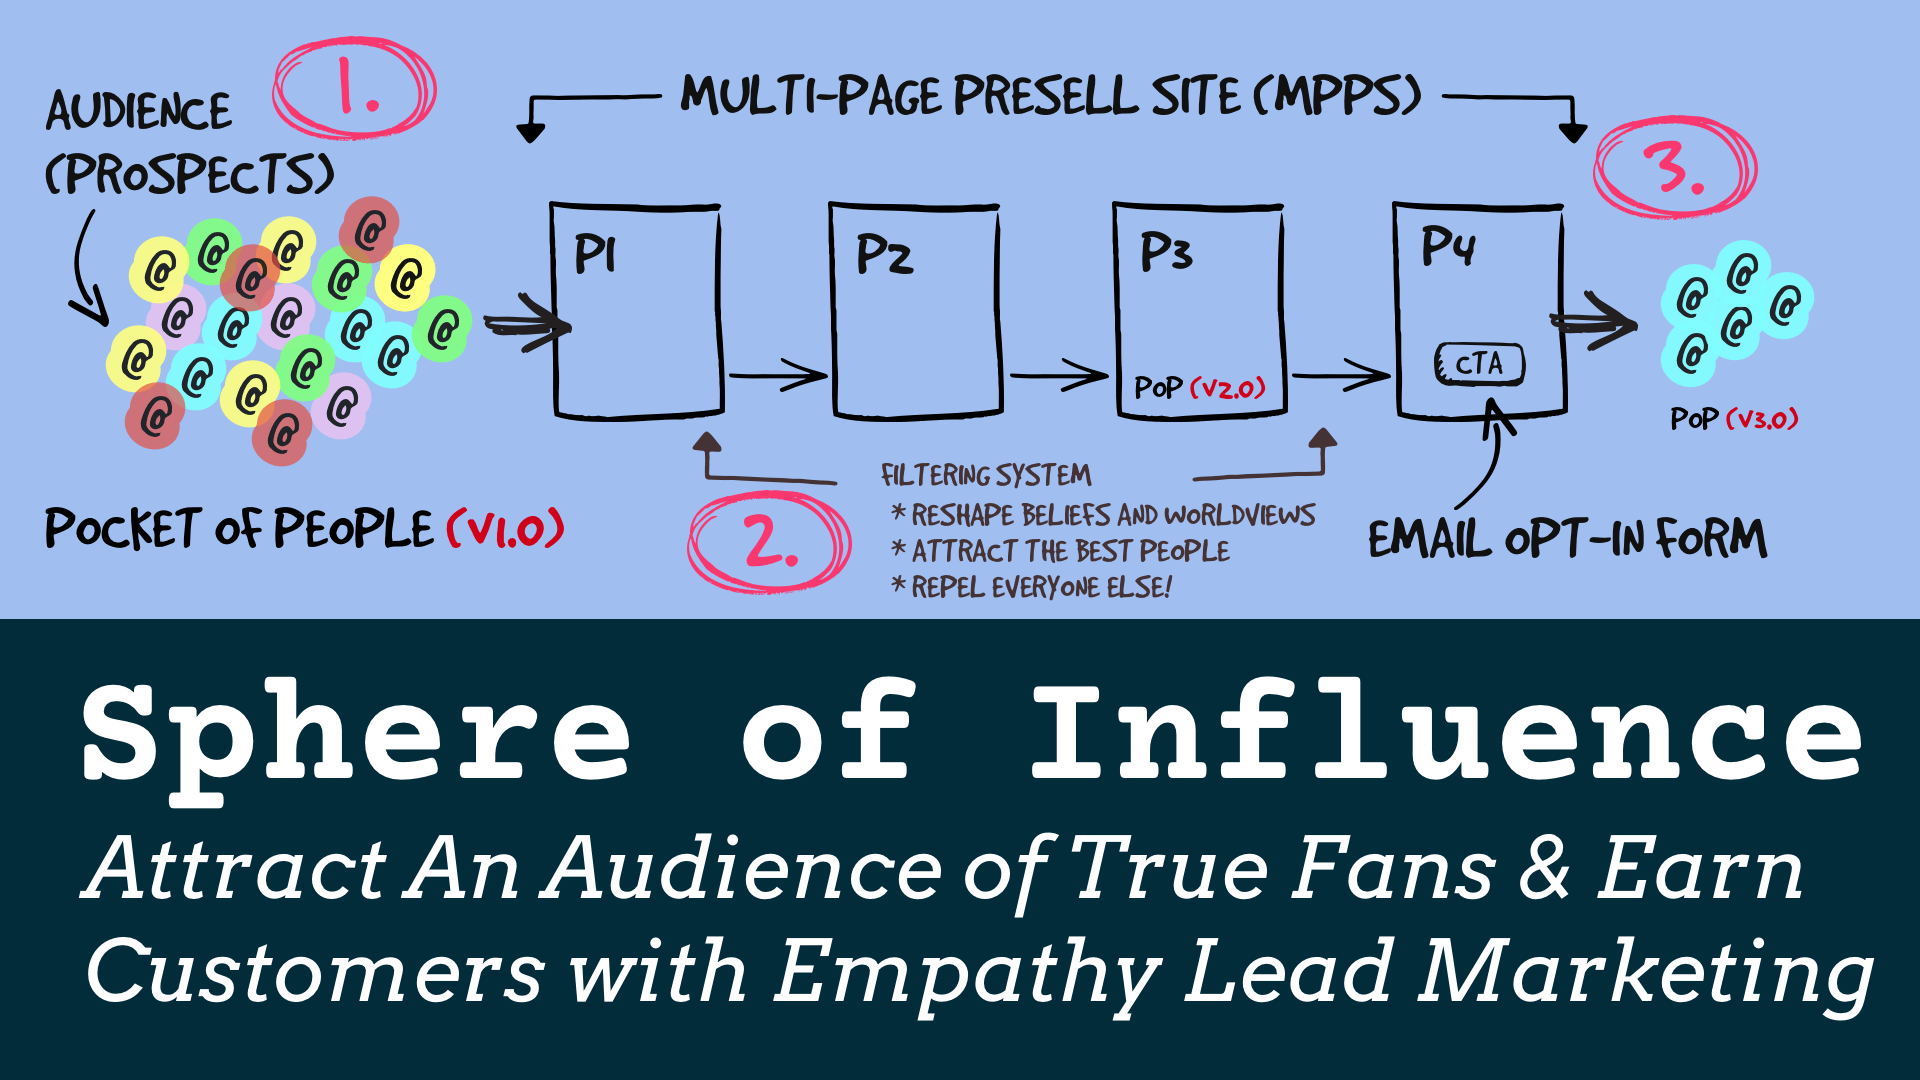 Sphere of Influence (SOI) – Attract Amazing Customers (Empathy Lead Story Driven Marketing) | by André Chaperon